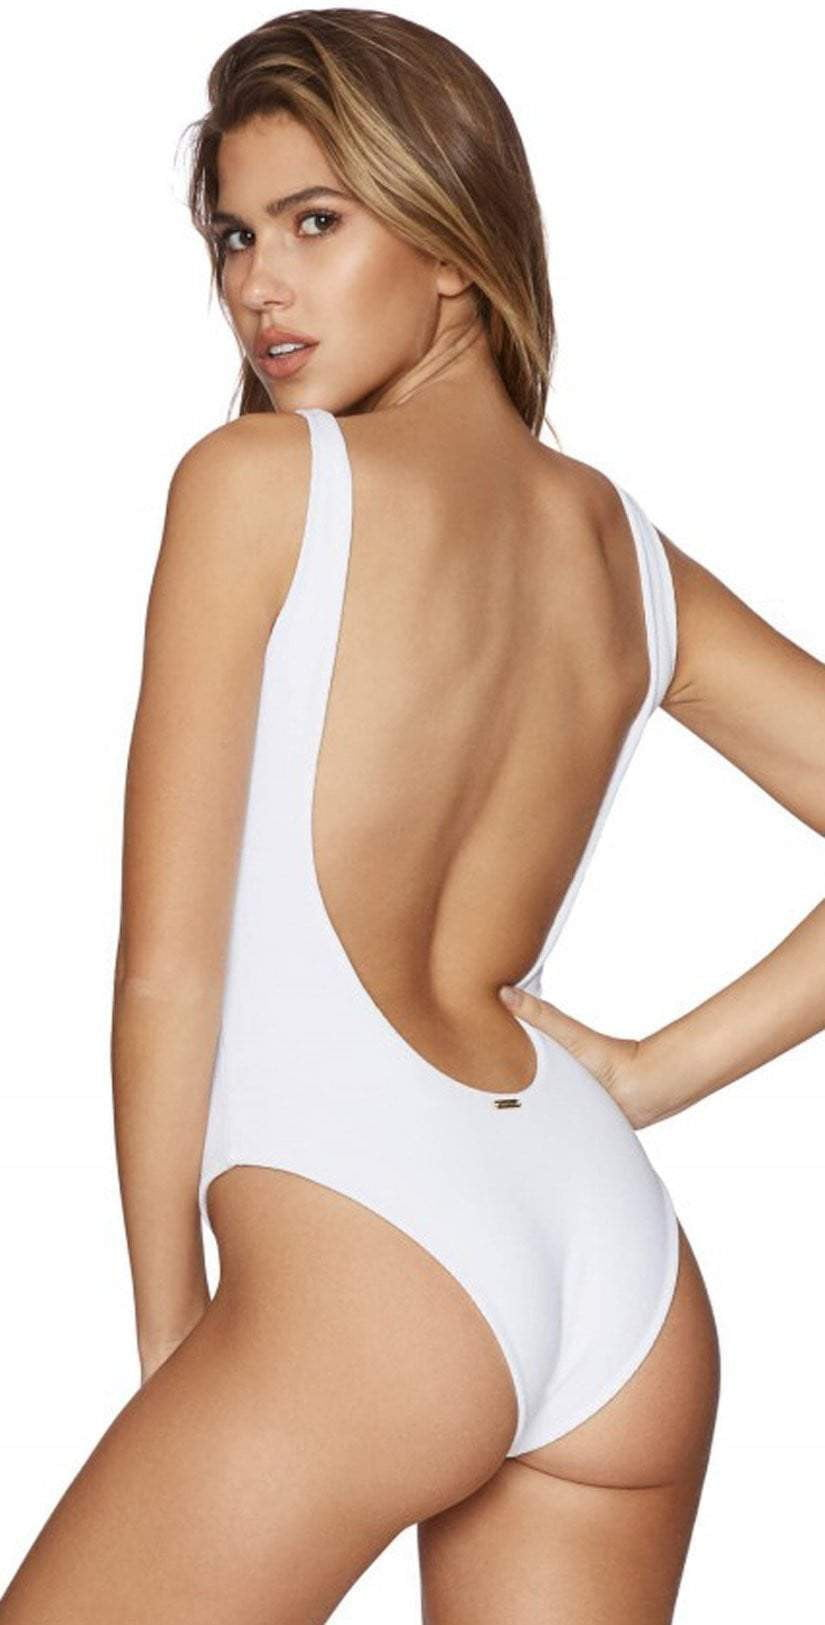 d9754165f204a Beach Bunny Rib Tide One Piece In Blue and White B171251P-100 ...